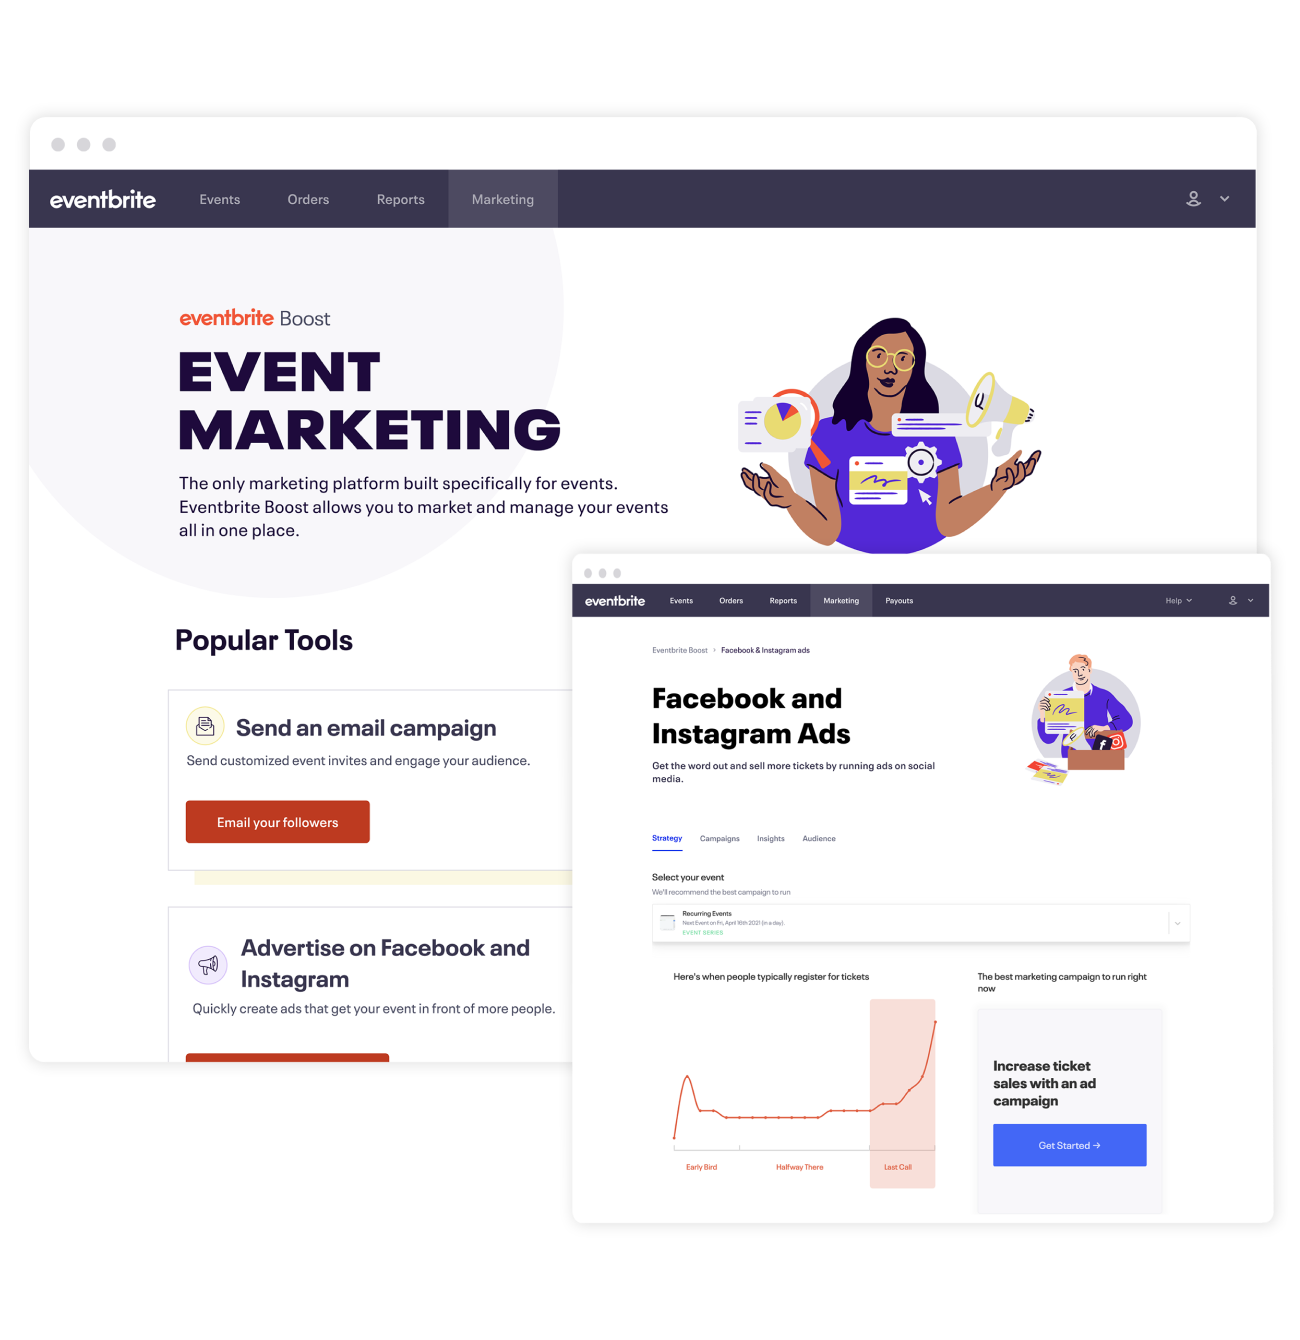 Eventbrite's event marketing software helps you save time and sell more tickets